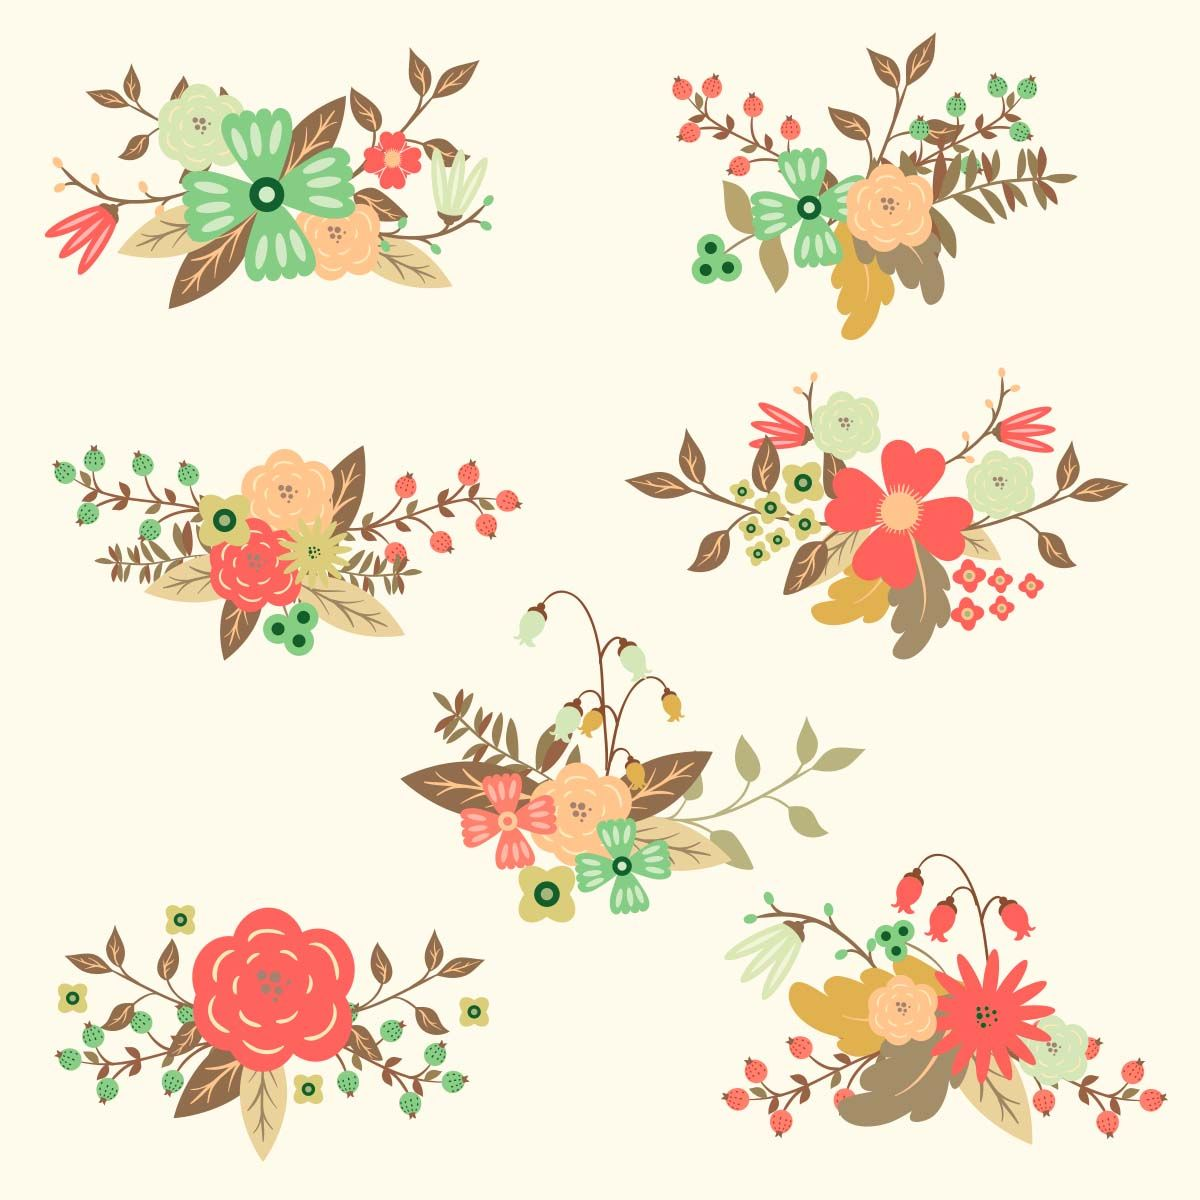 Free Vector Floral Hand Drawn Set Free Download Vector Free Flower Drawing Vector Flowers